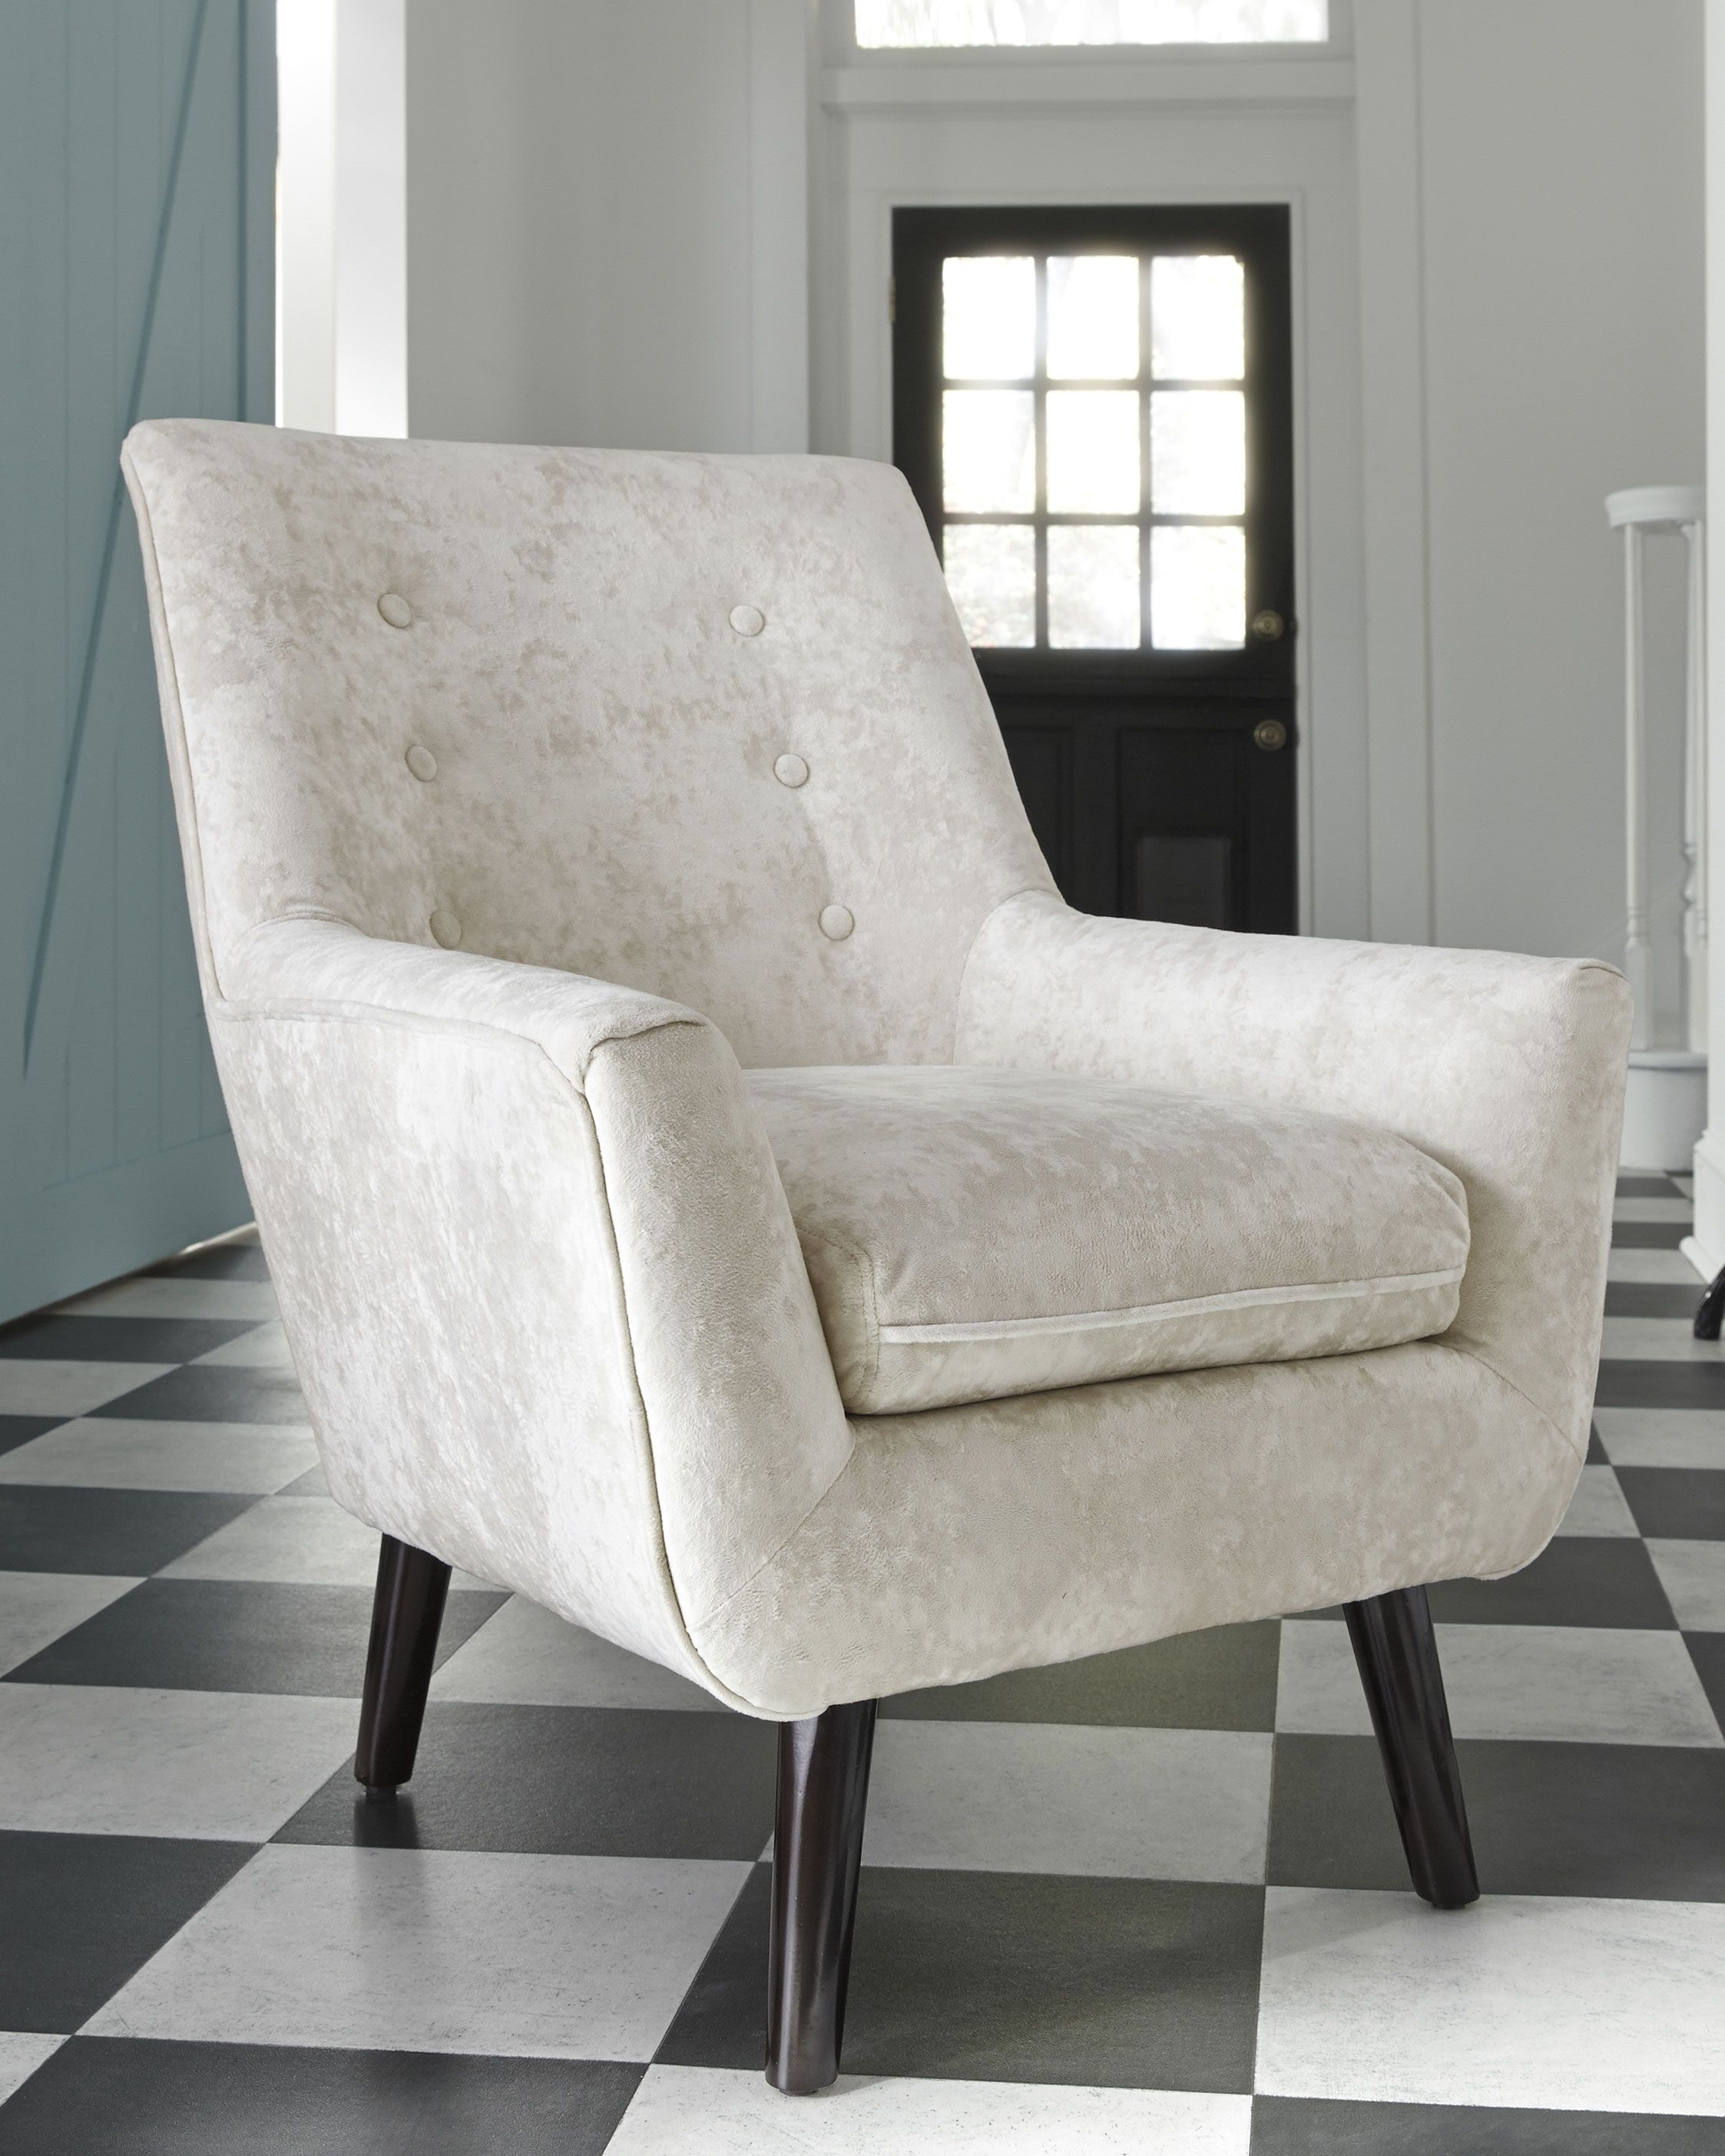 Zossen Accent Chair Ivory In 2020 Accent Chairs Furniture